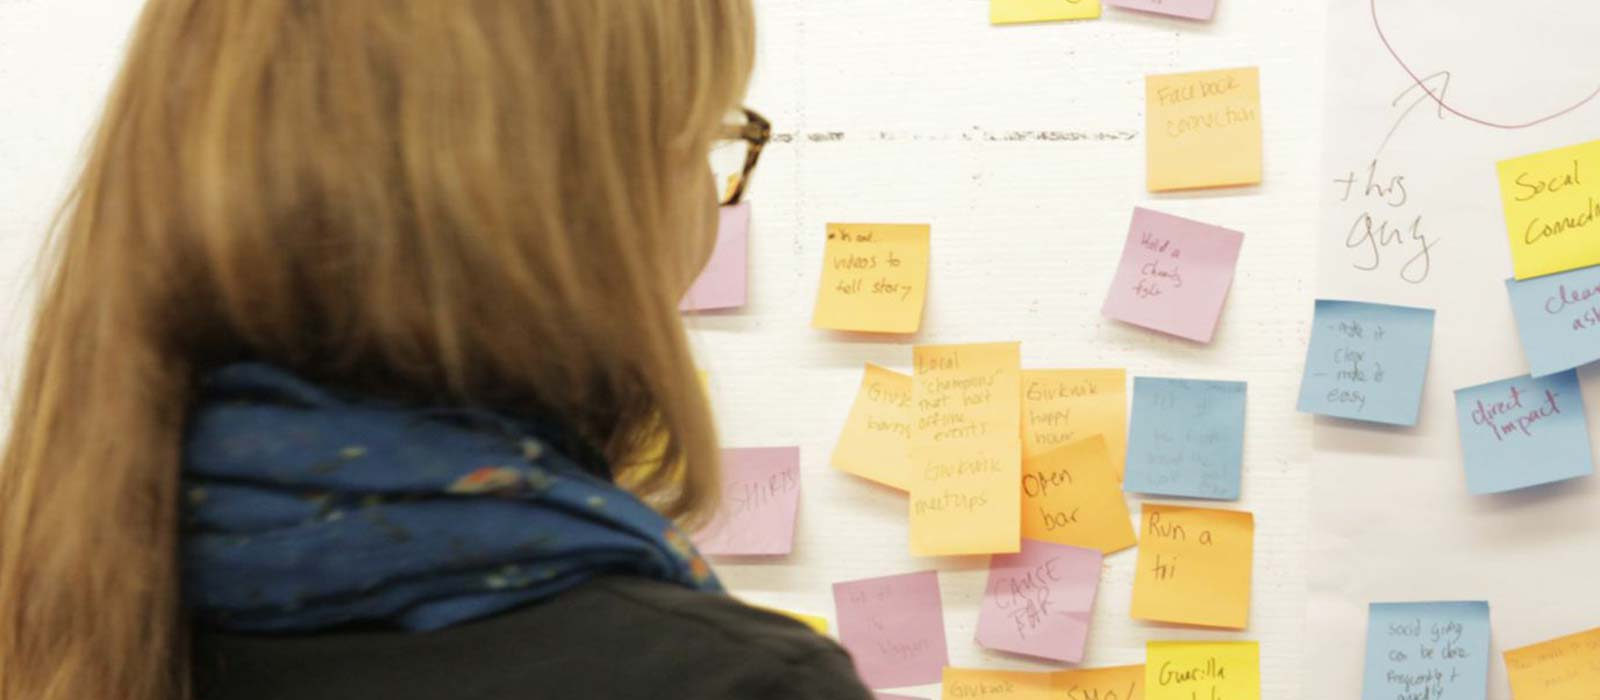 Woman looking at board with Post Its